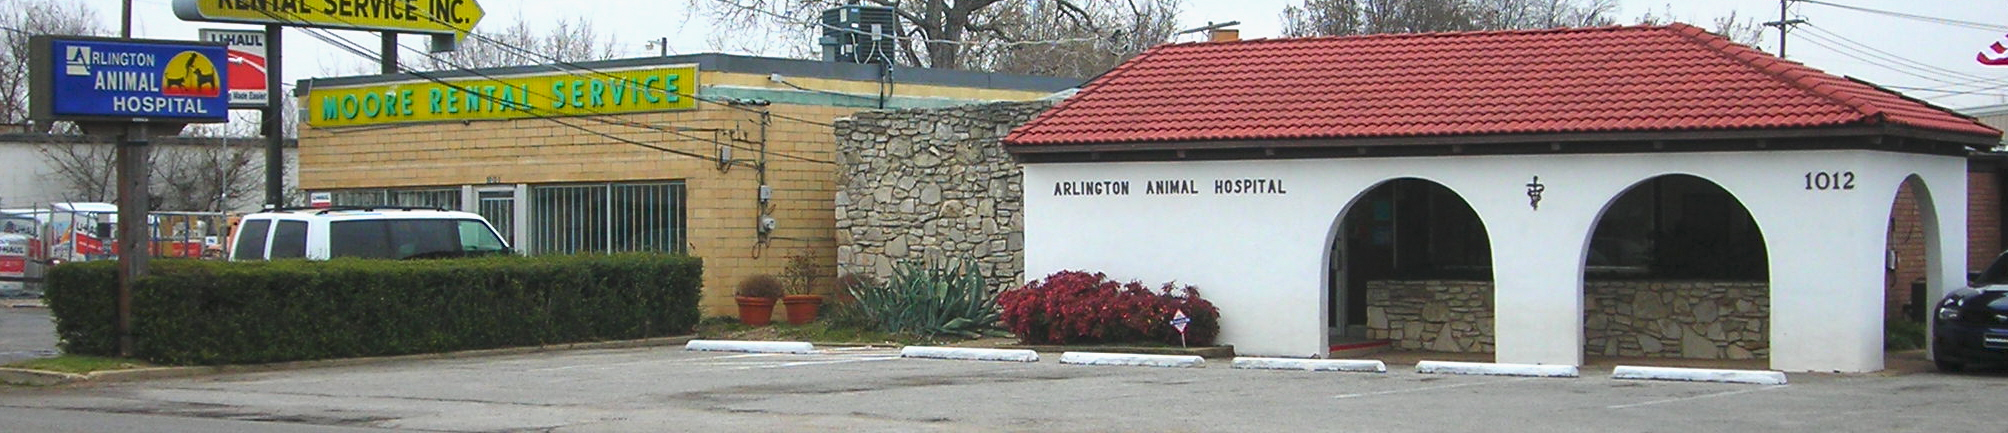 Arlington Animal hospital image 1